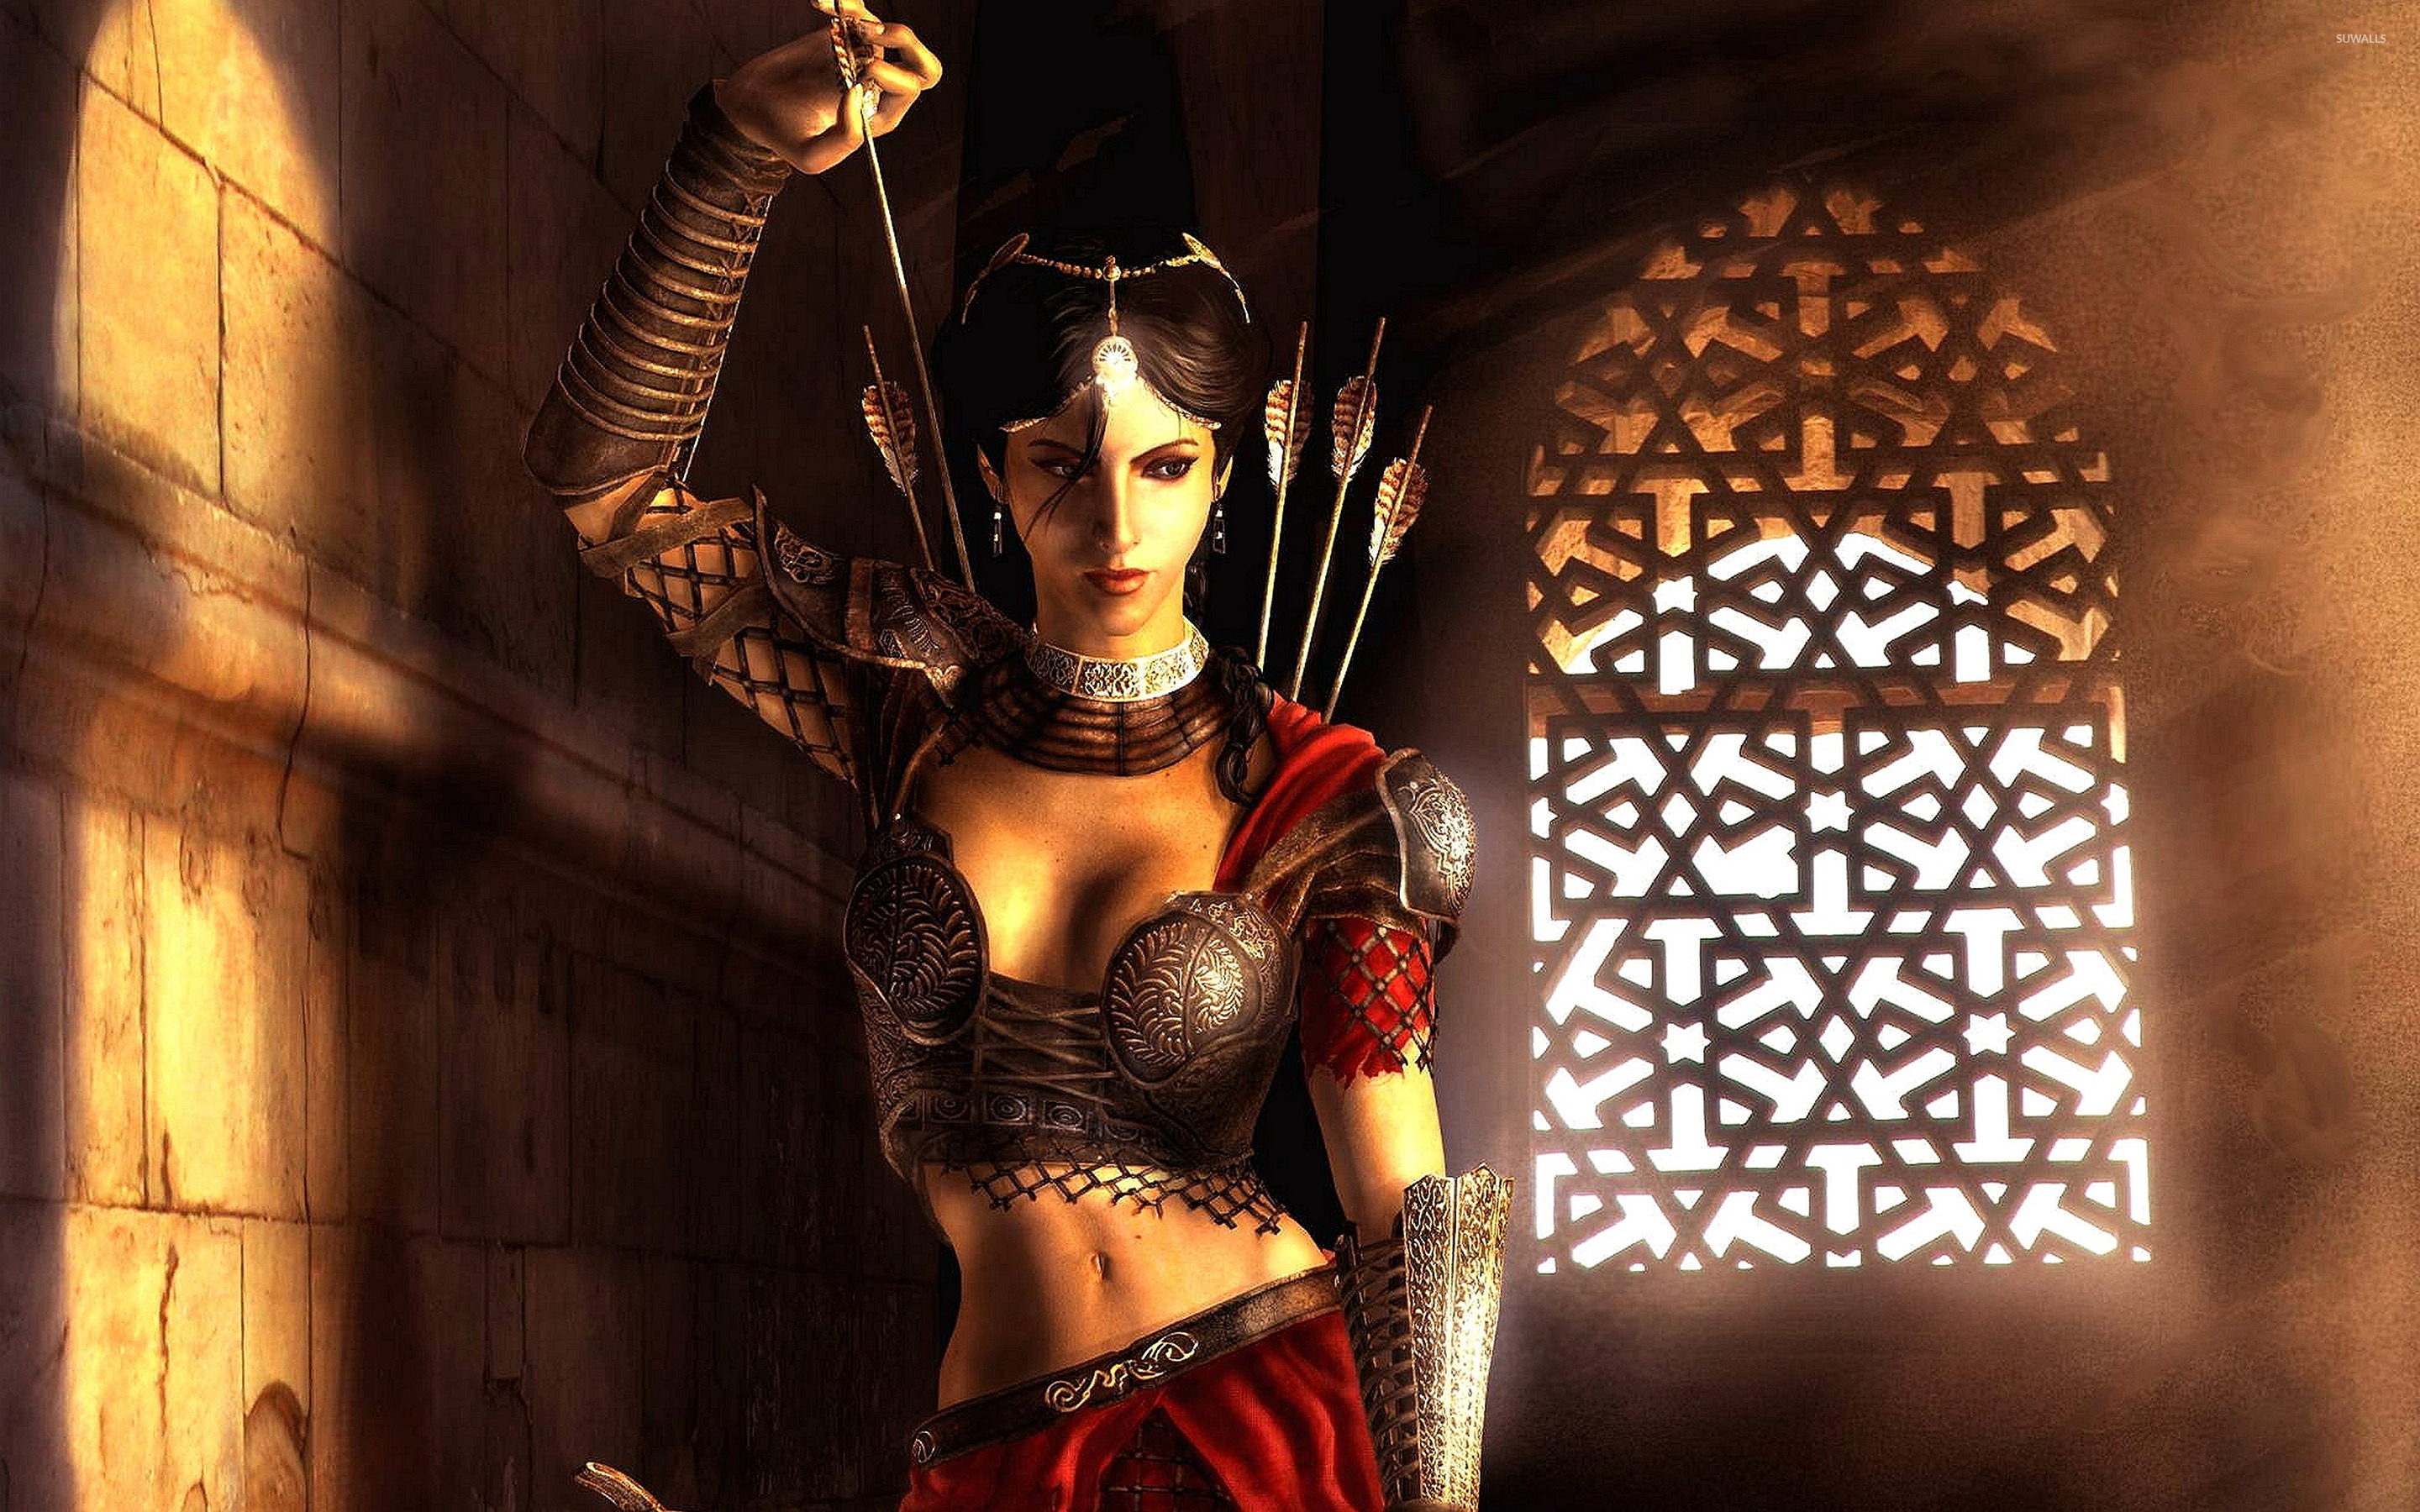 Prince of persia the two thrones woman  erotic images